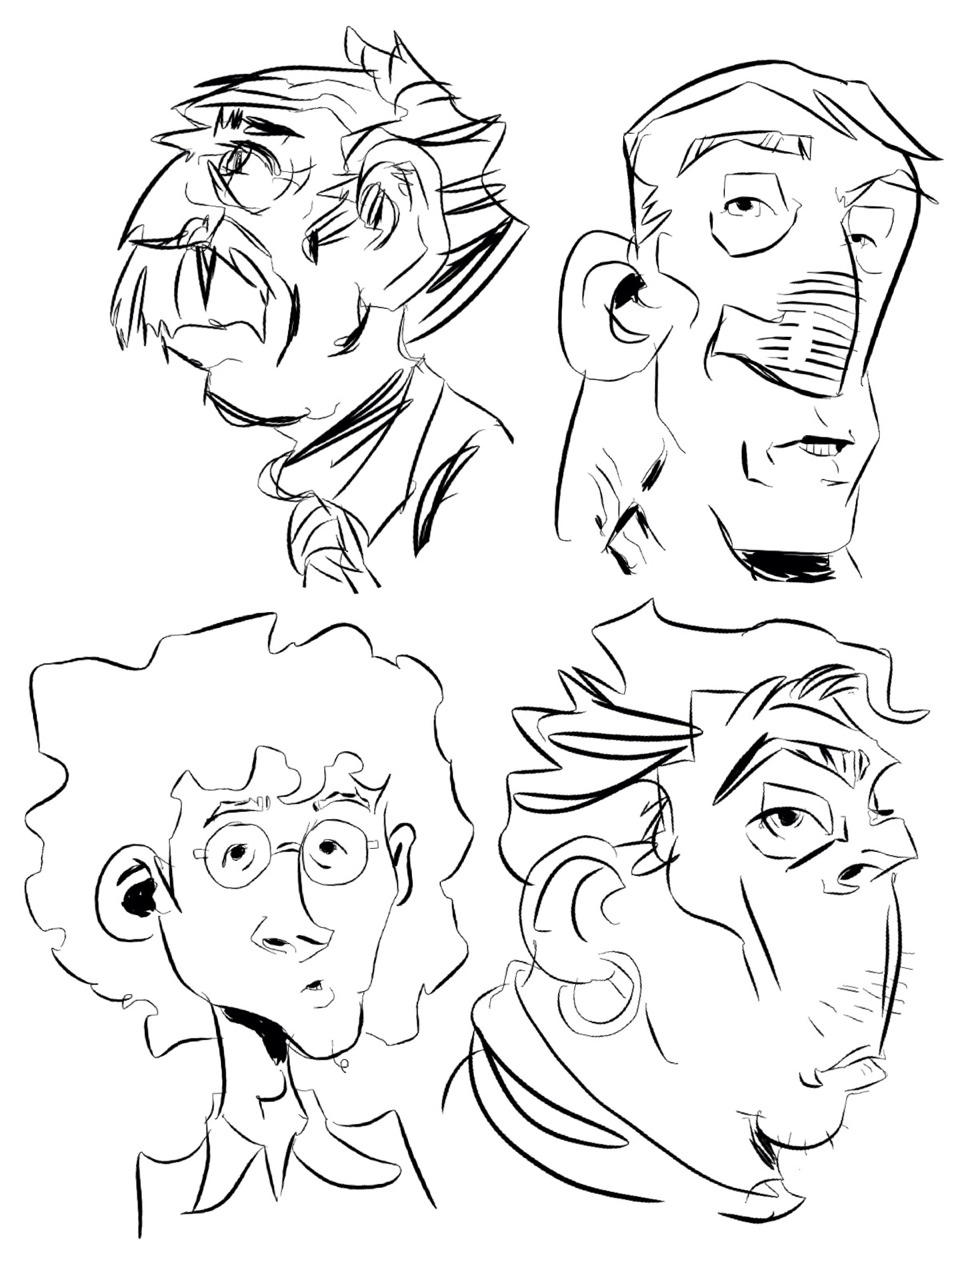 Doodles using Procreate for iPad.